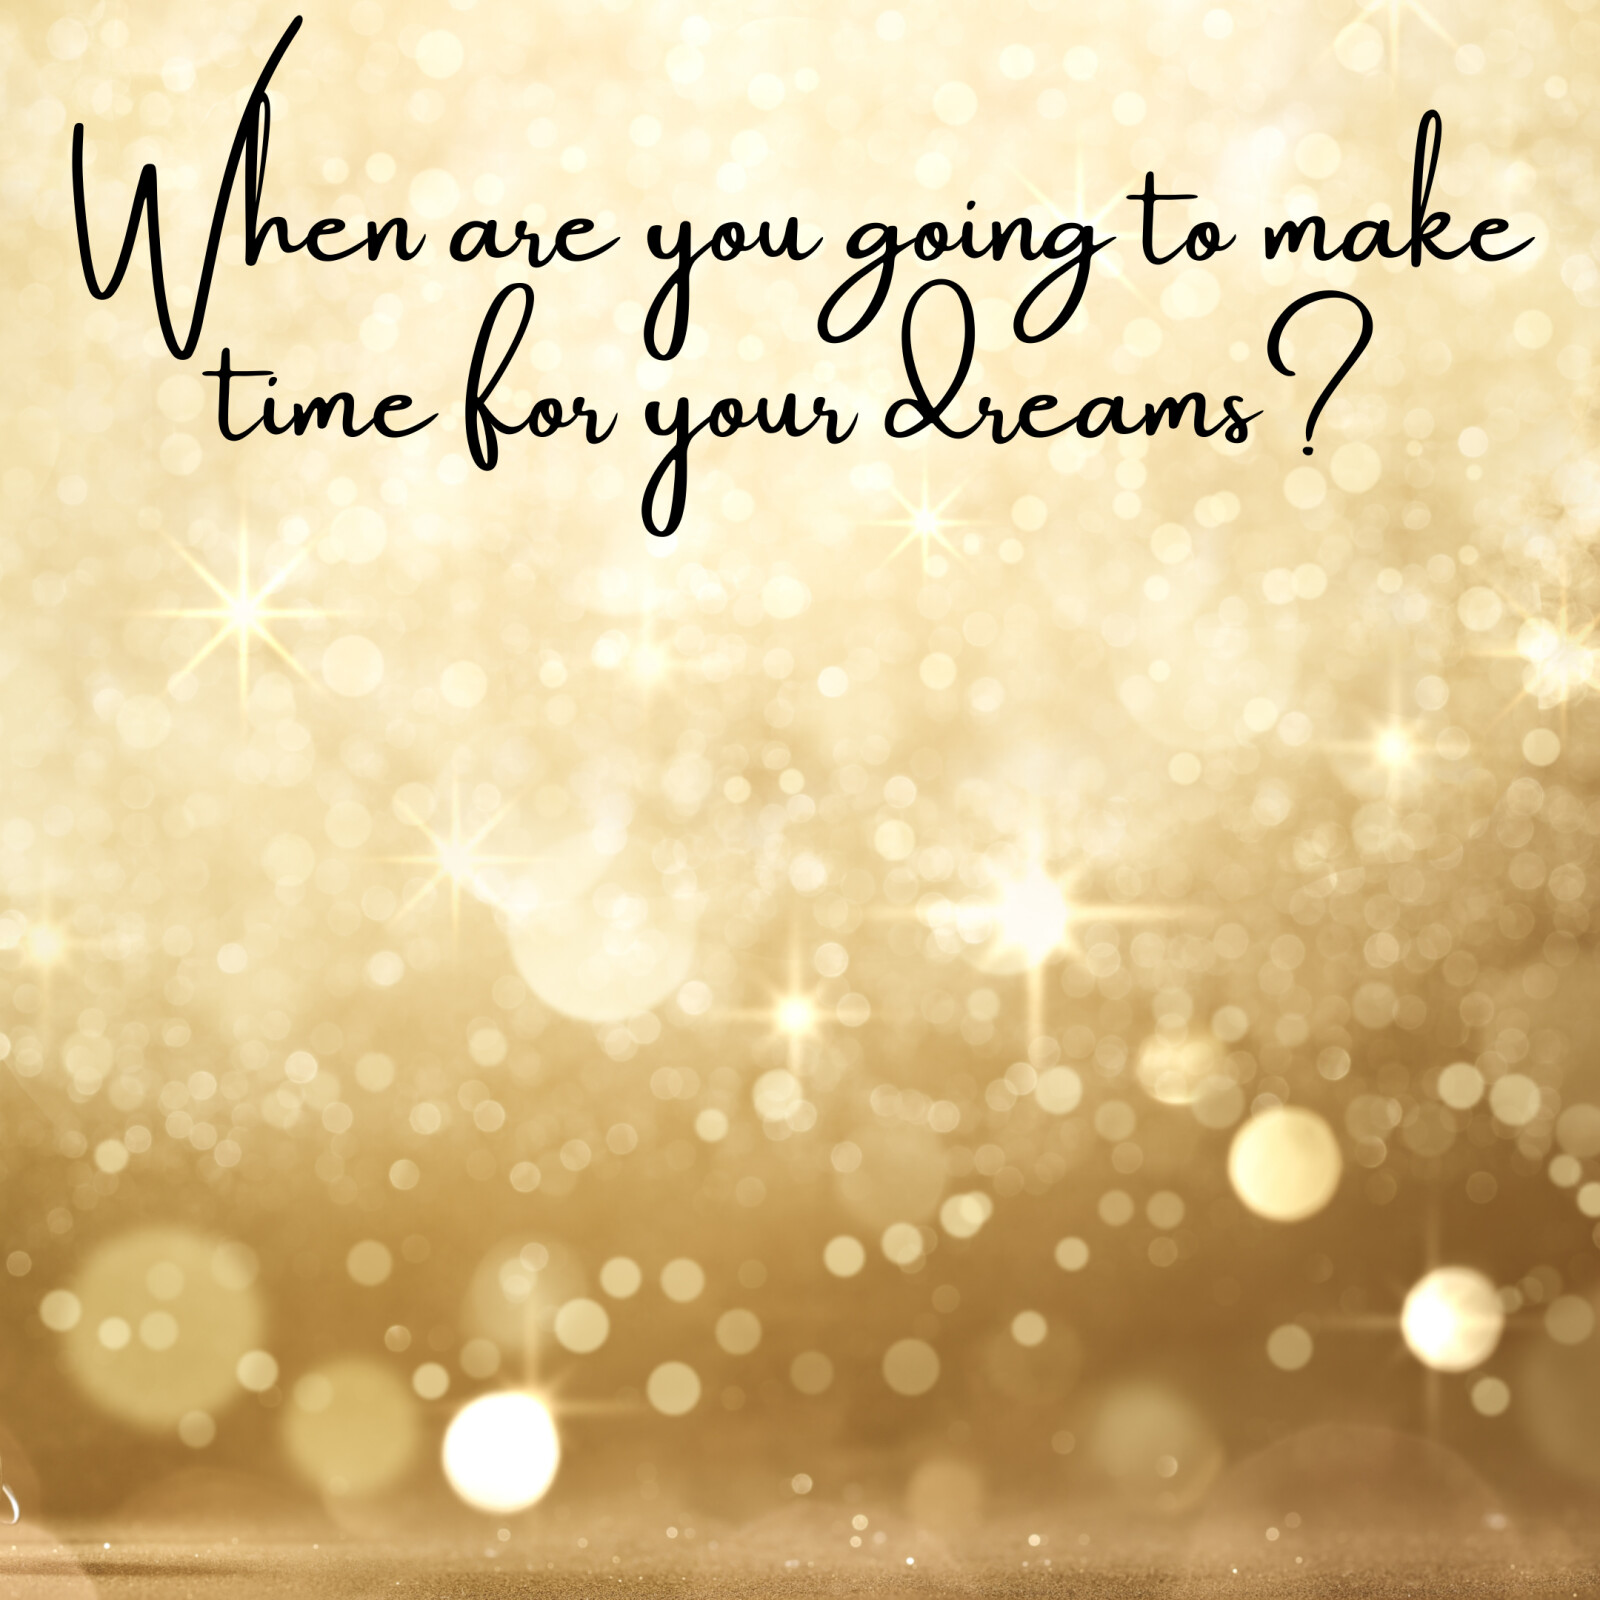 When are you Going to Make Time for Your Dreams?